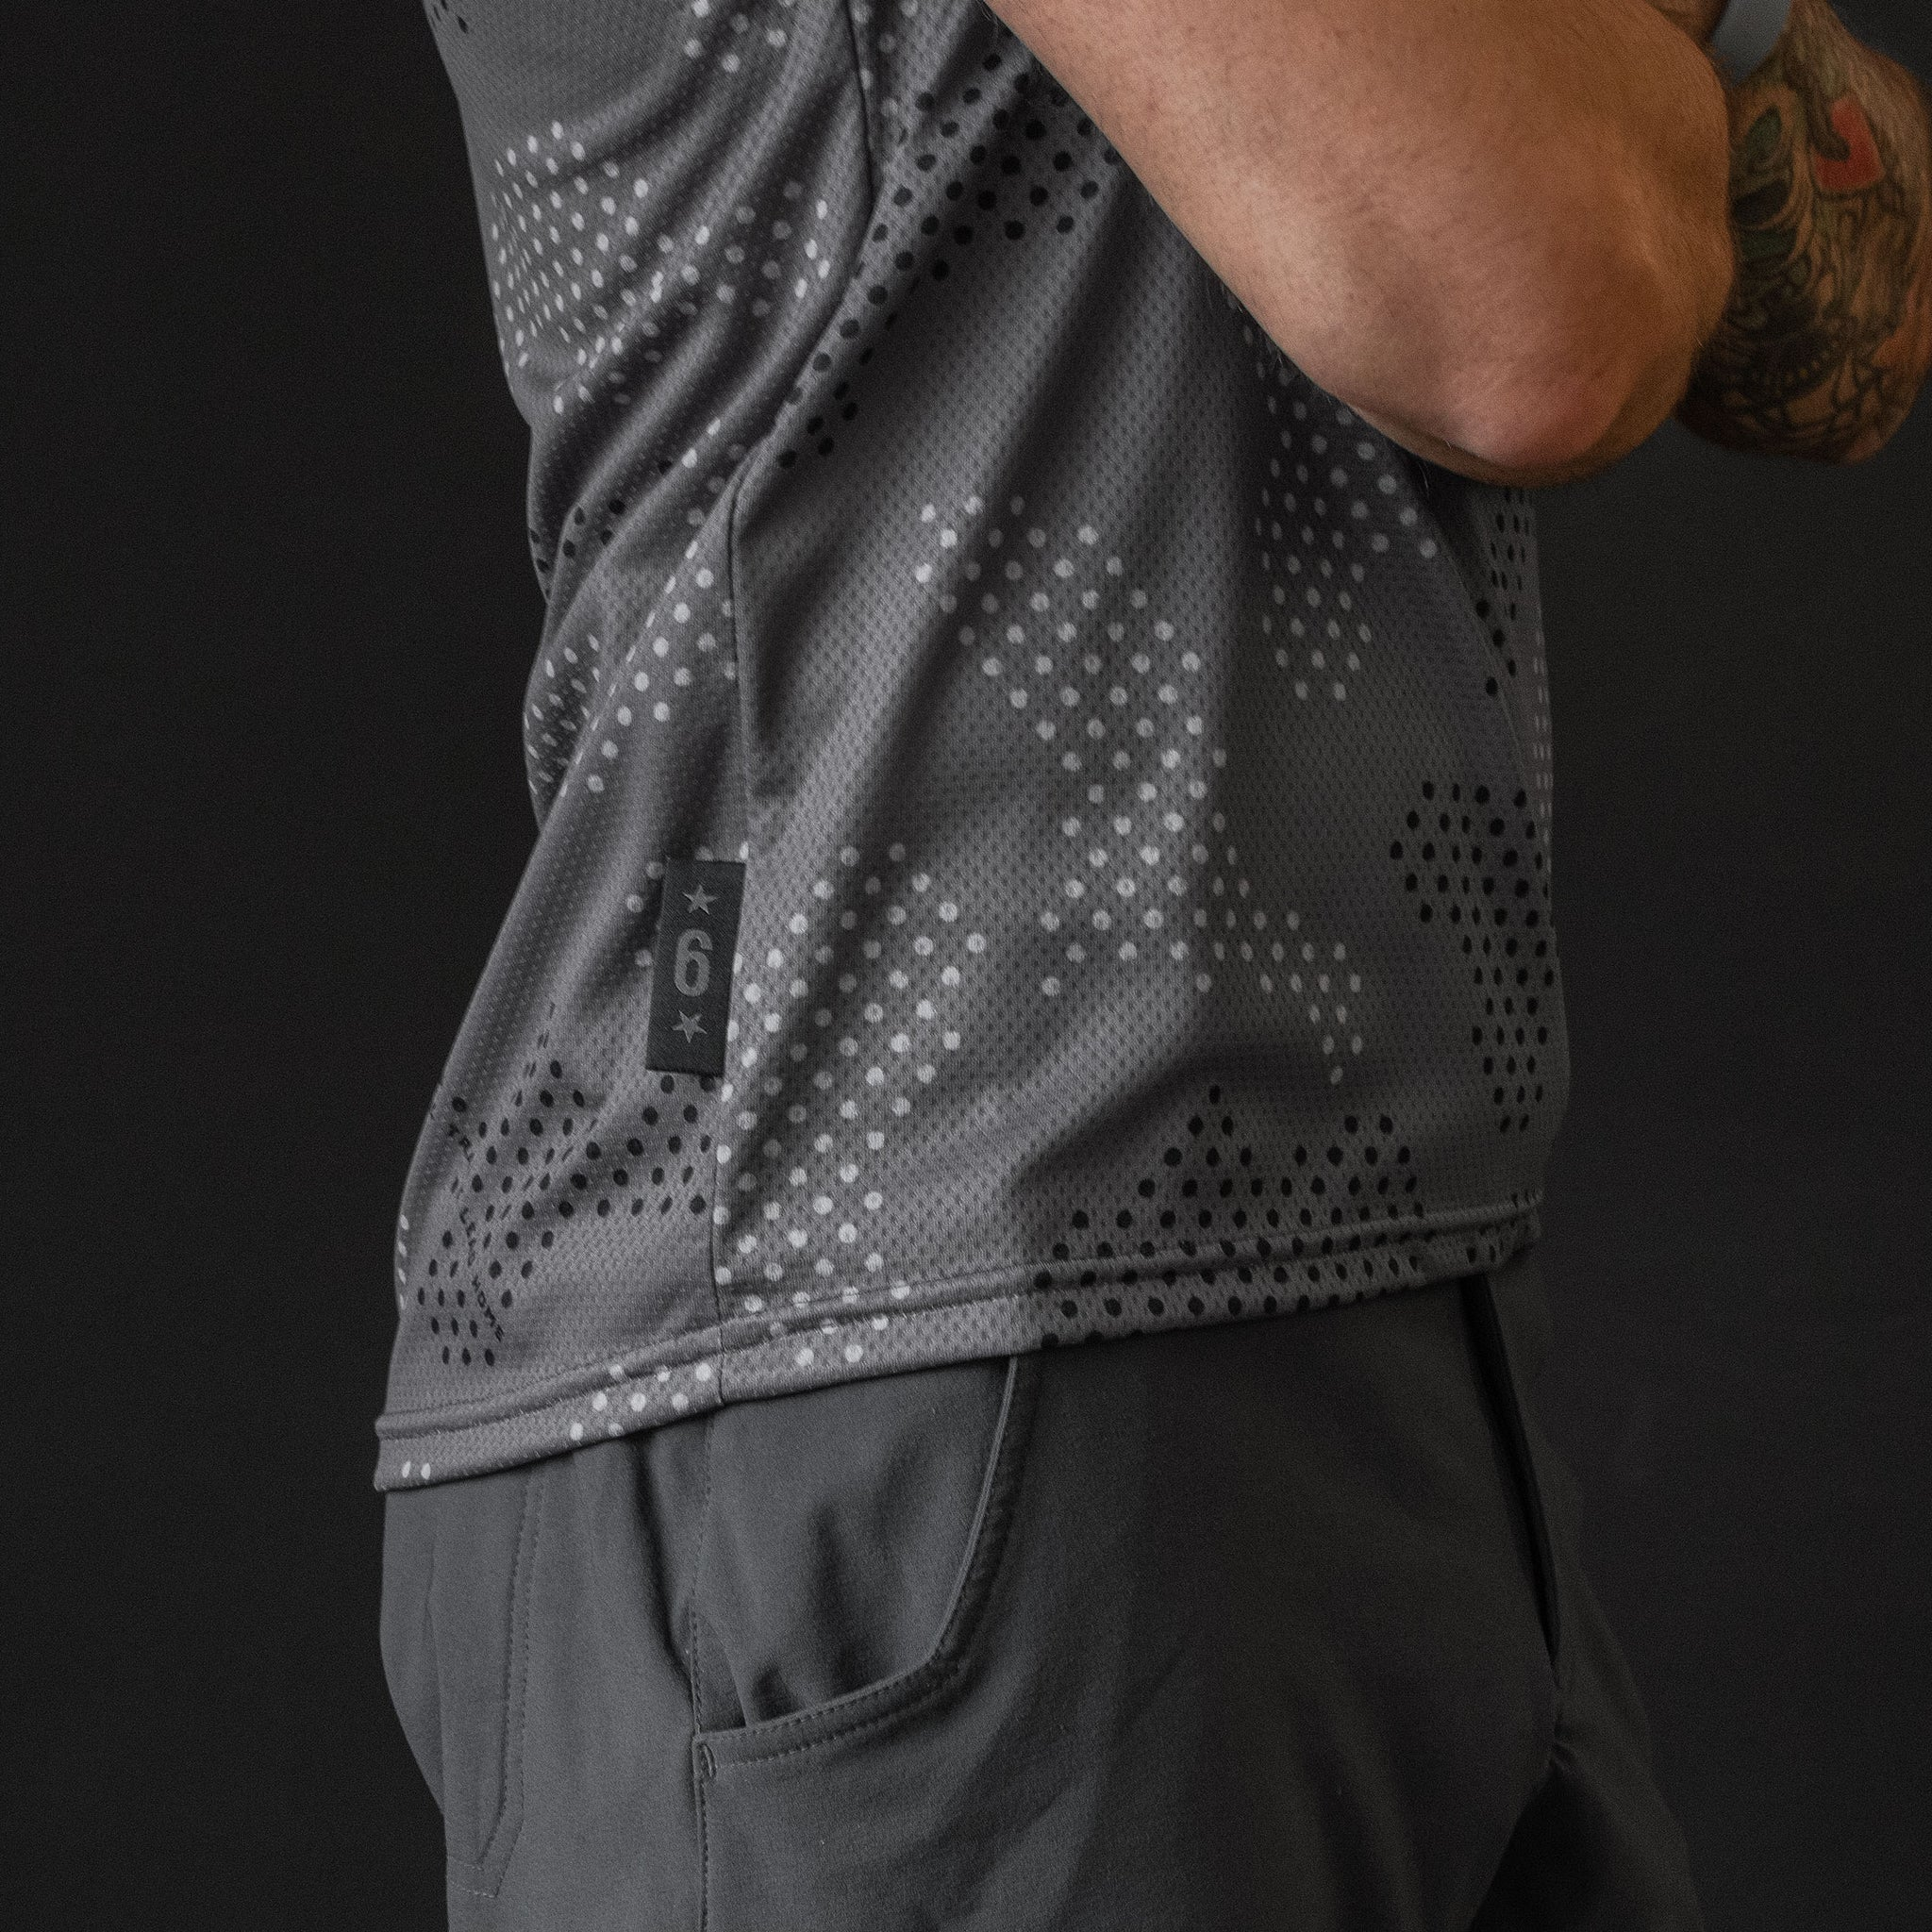 The Recon Trail Jersey